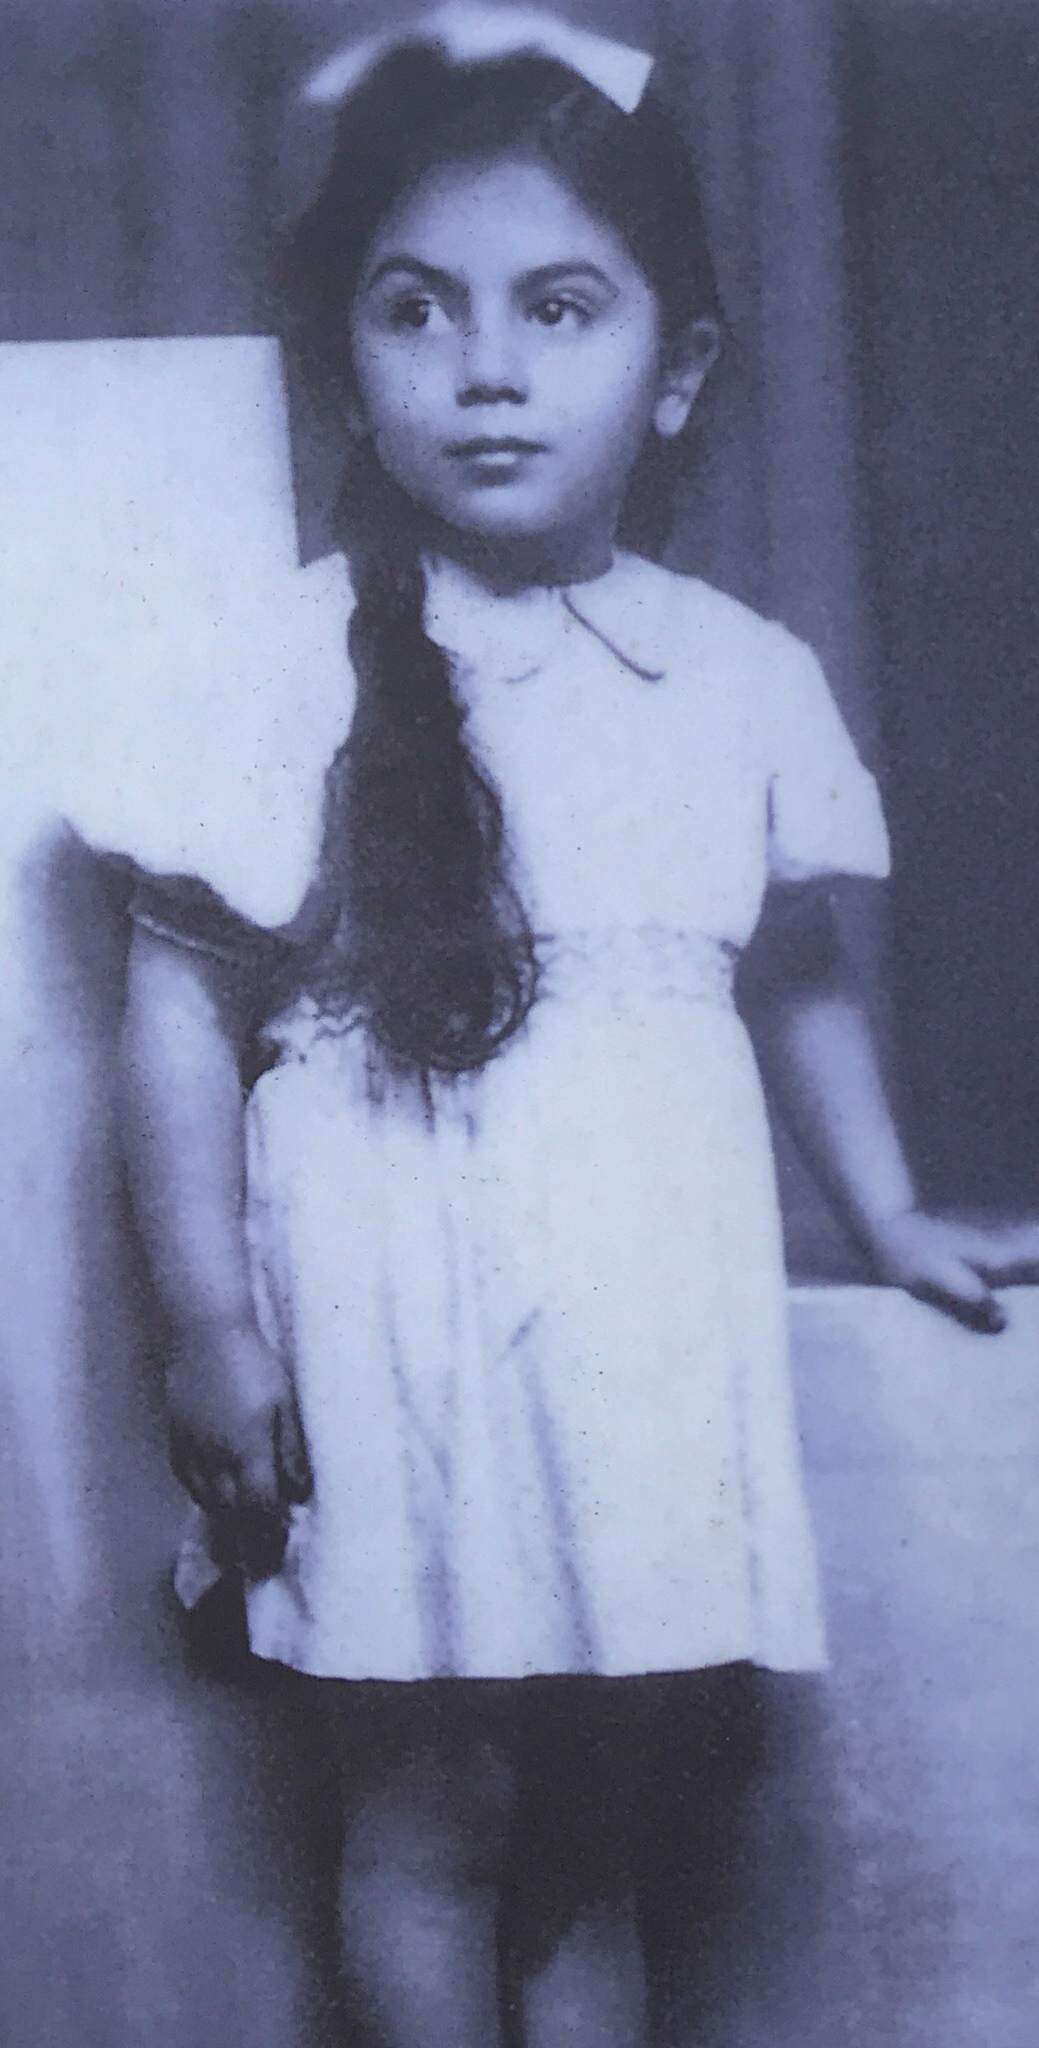 Young Stella, before she was imprisoned at Ravensbrück.